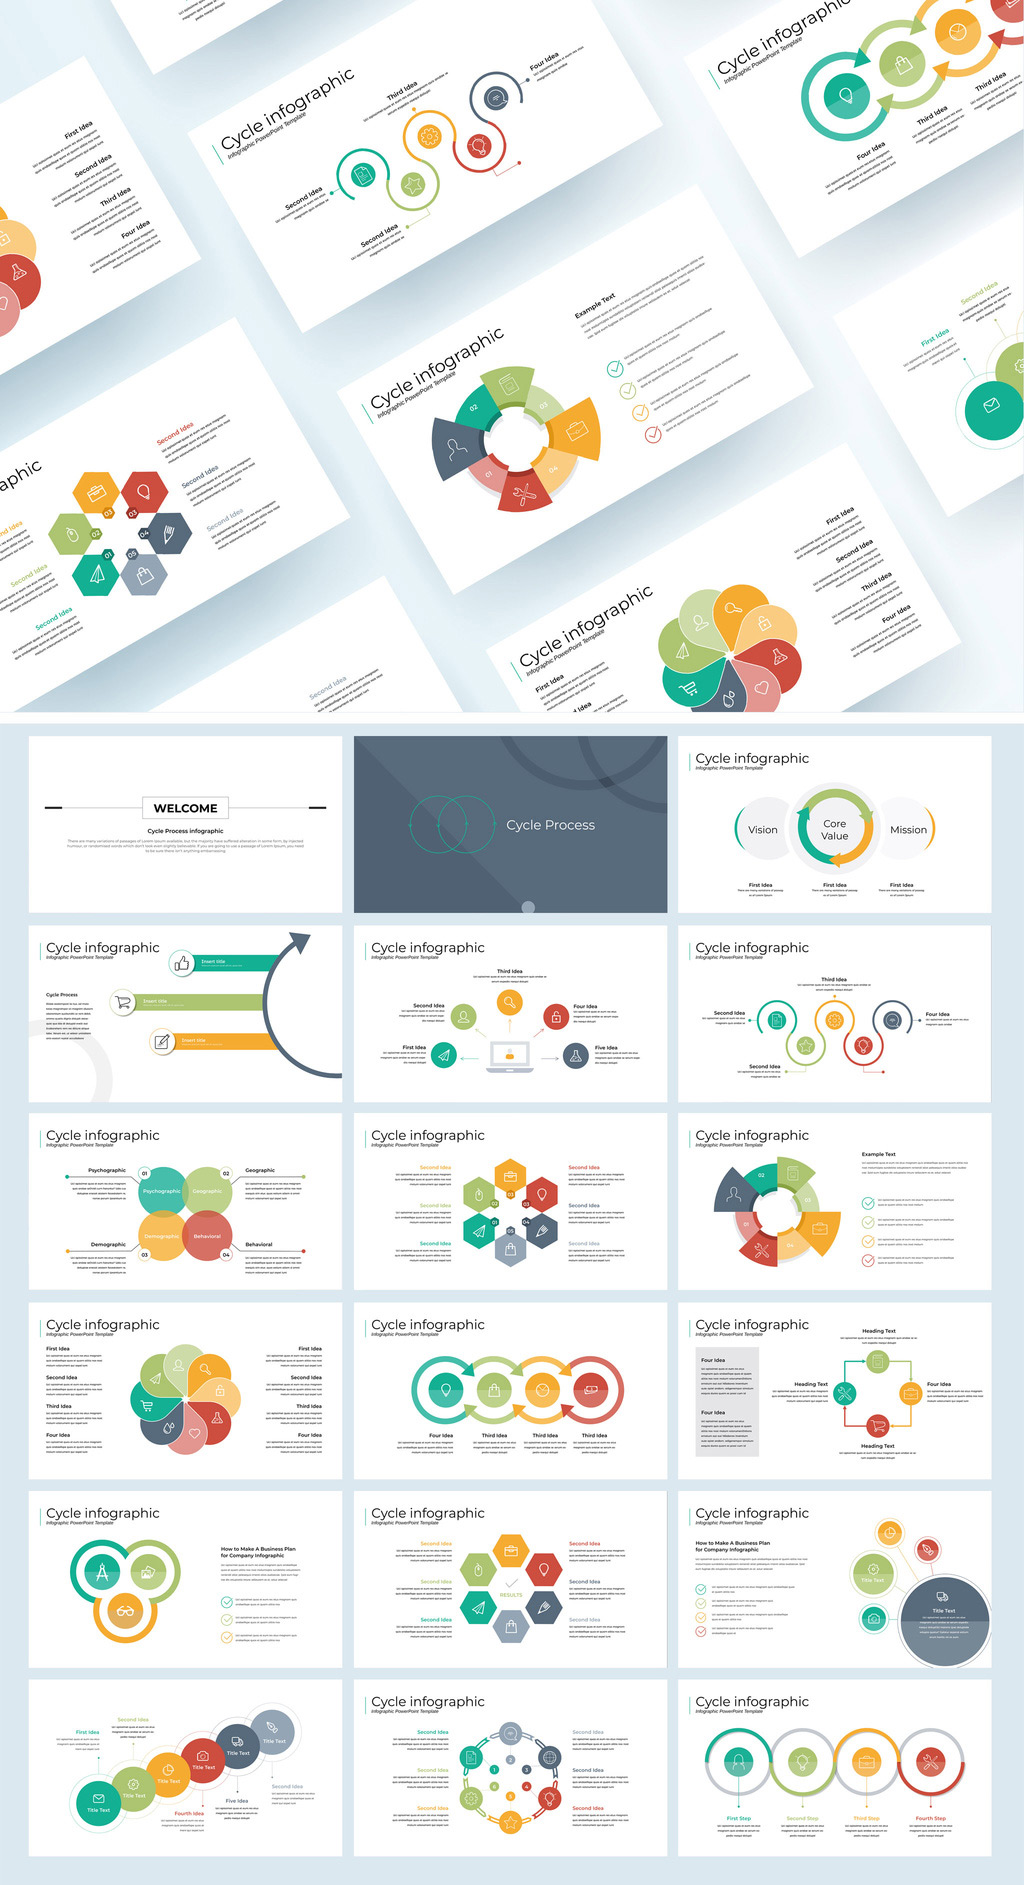 Cycle Process Infographic InDesign Presentation Template